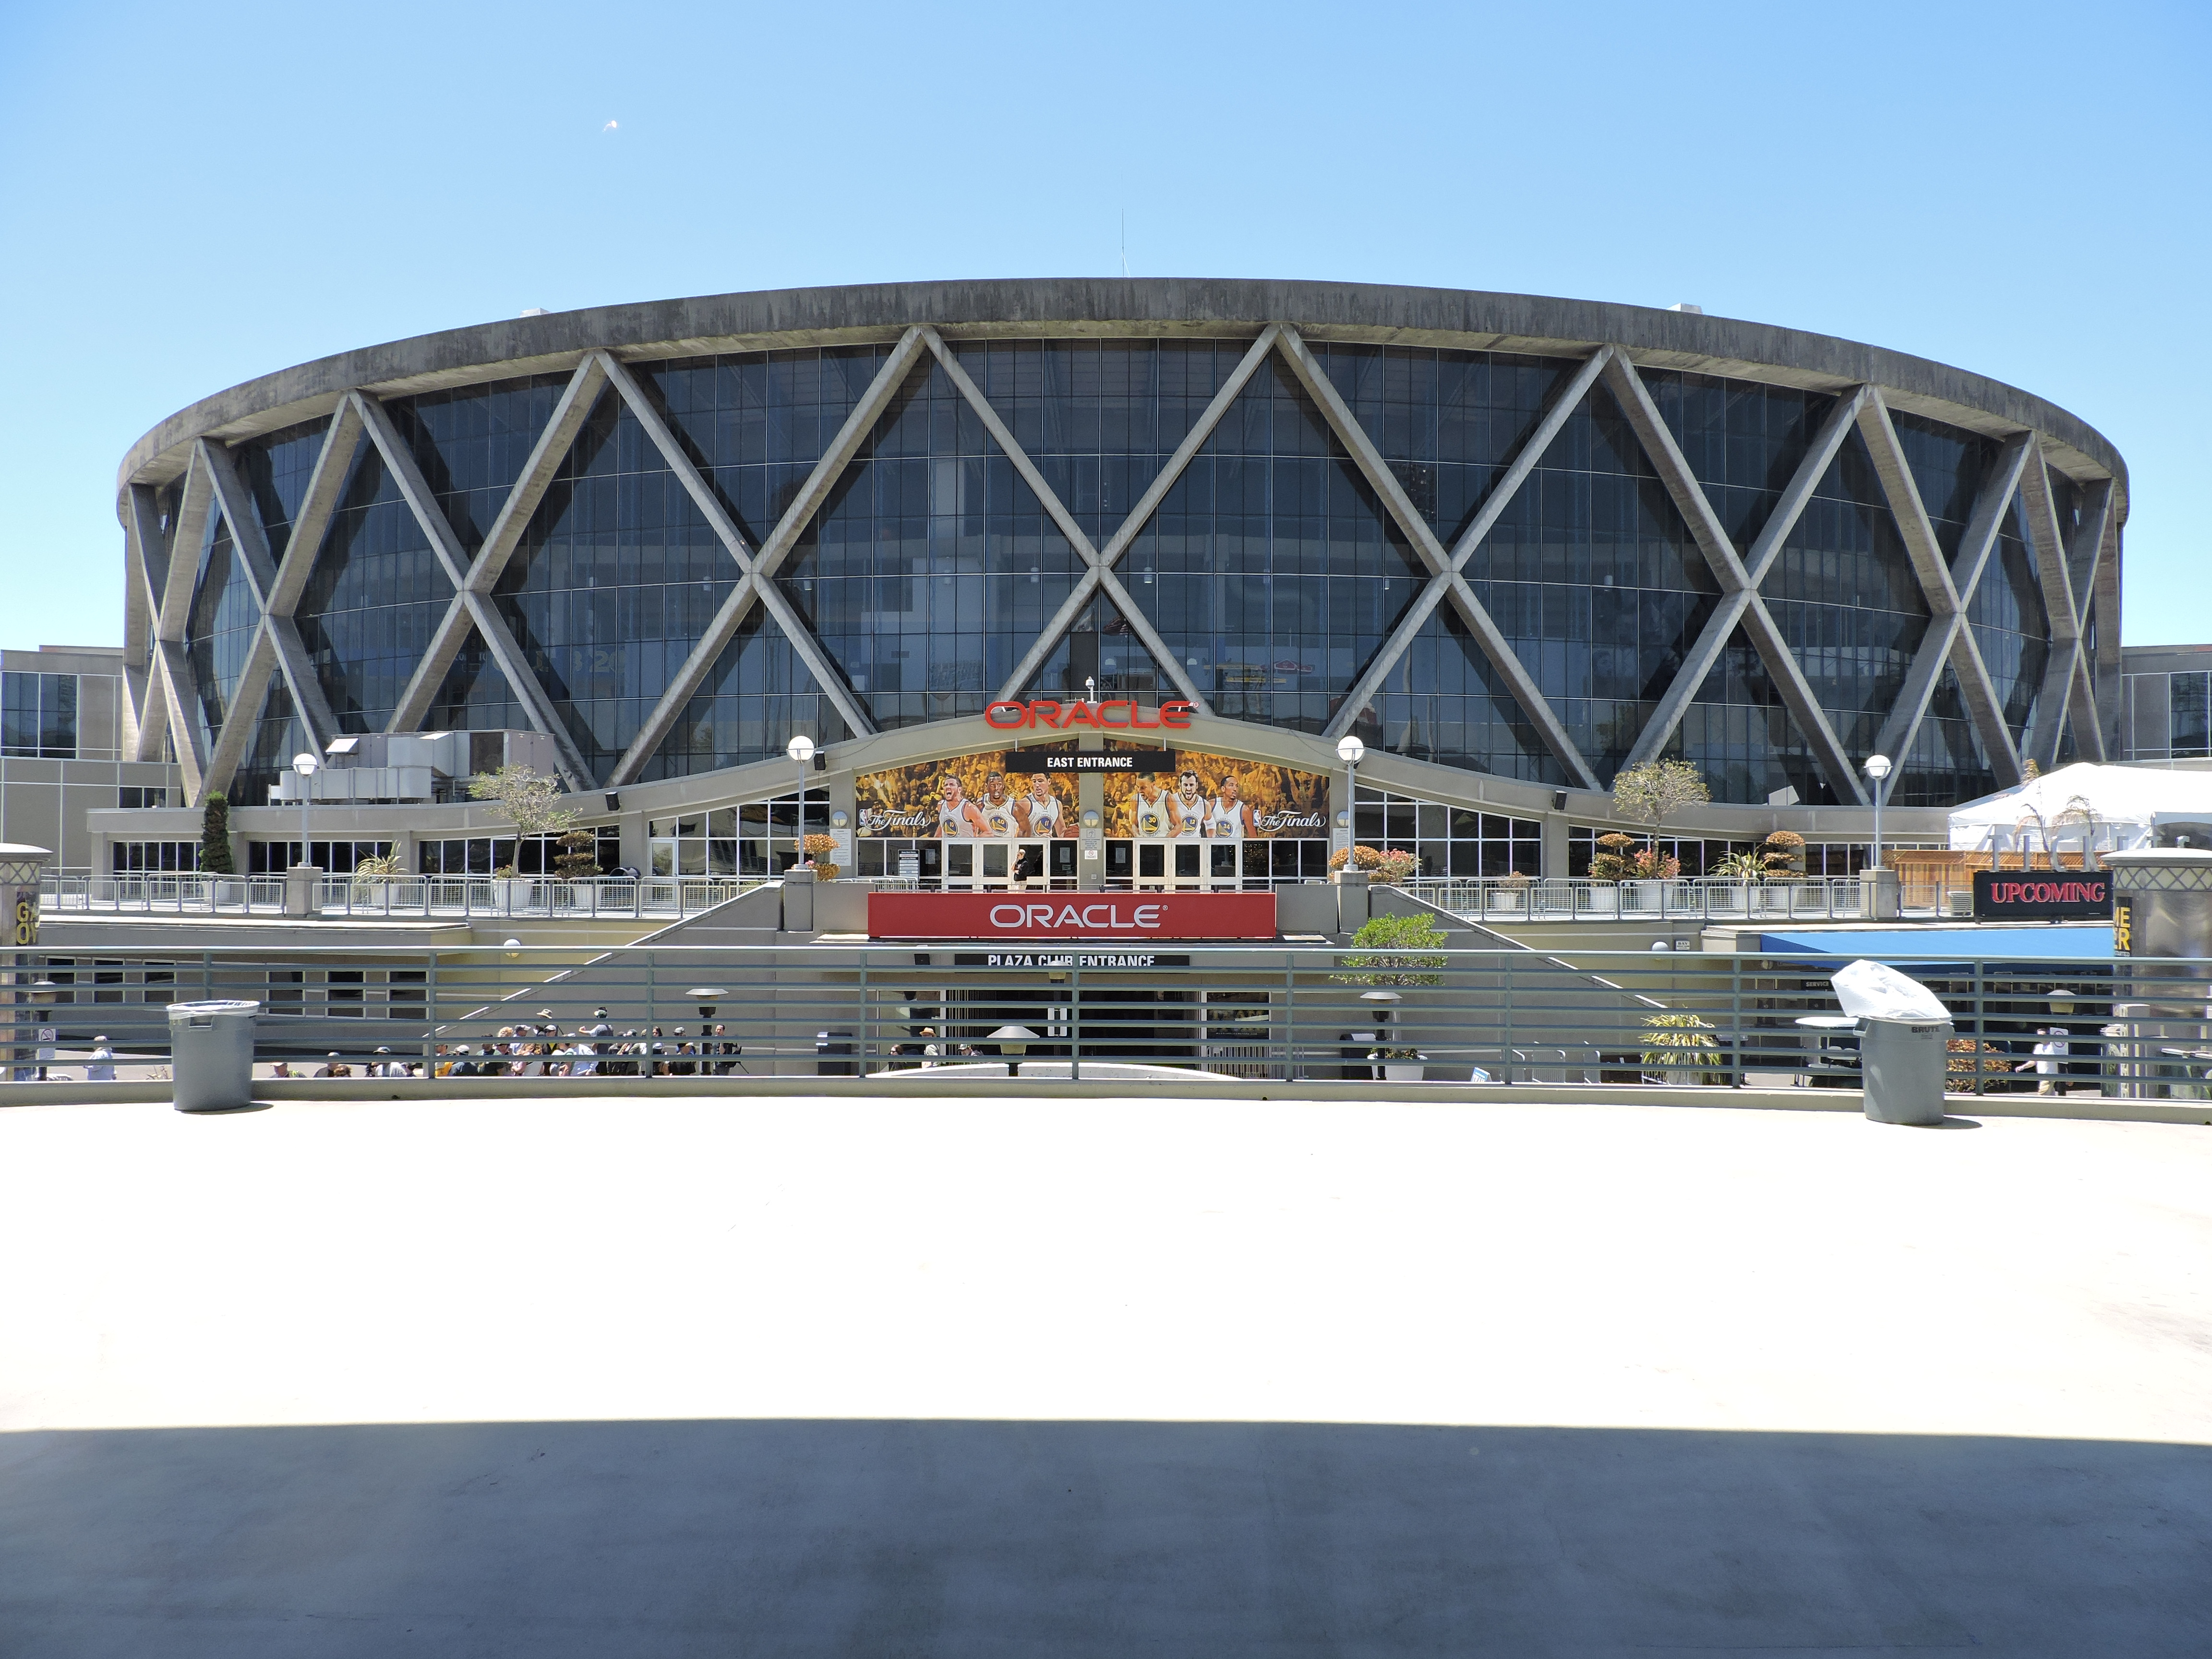 State warriors oracle arena and oakland alameda county coliseum - Here Are A Couple Of Views Of Oracle Arena Where The Golden State Warriors Play Game 7 Would Have Been Here On Friday Night Had The Warriors Not Defeated